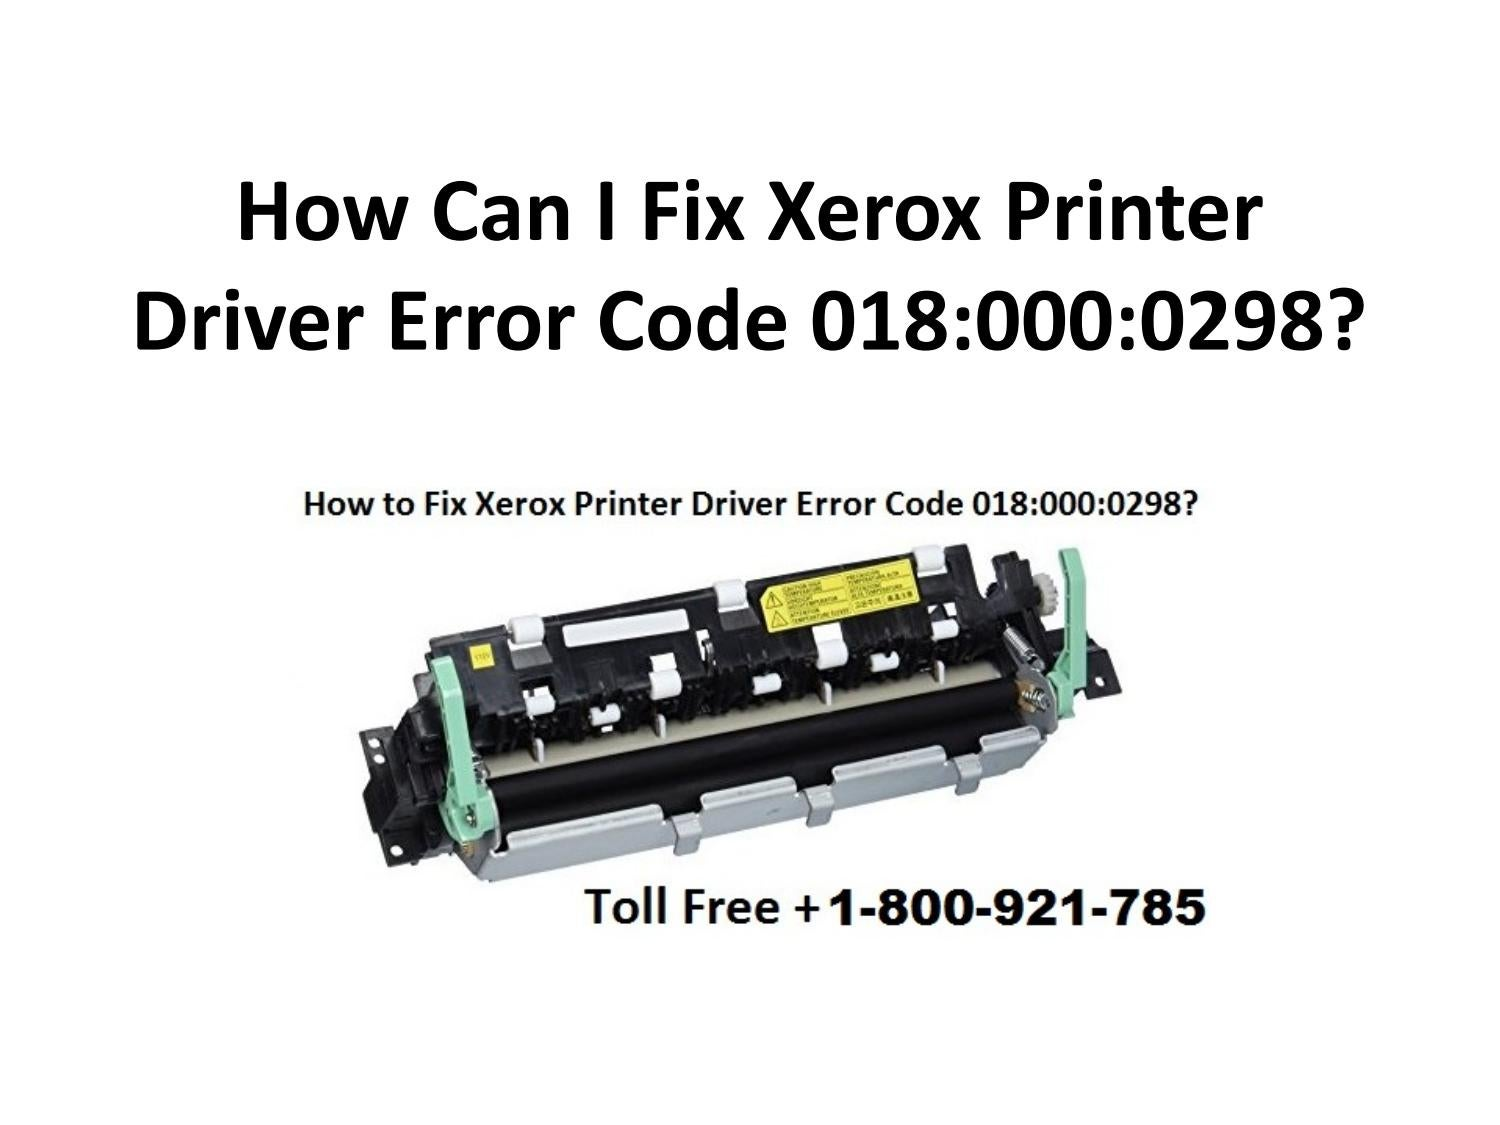 How can i fix xerox printer driver error code 0180000298